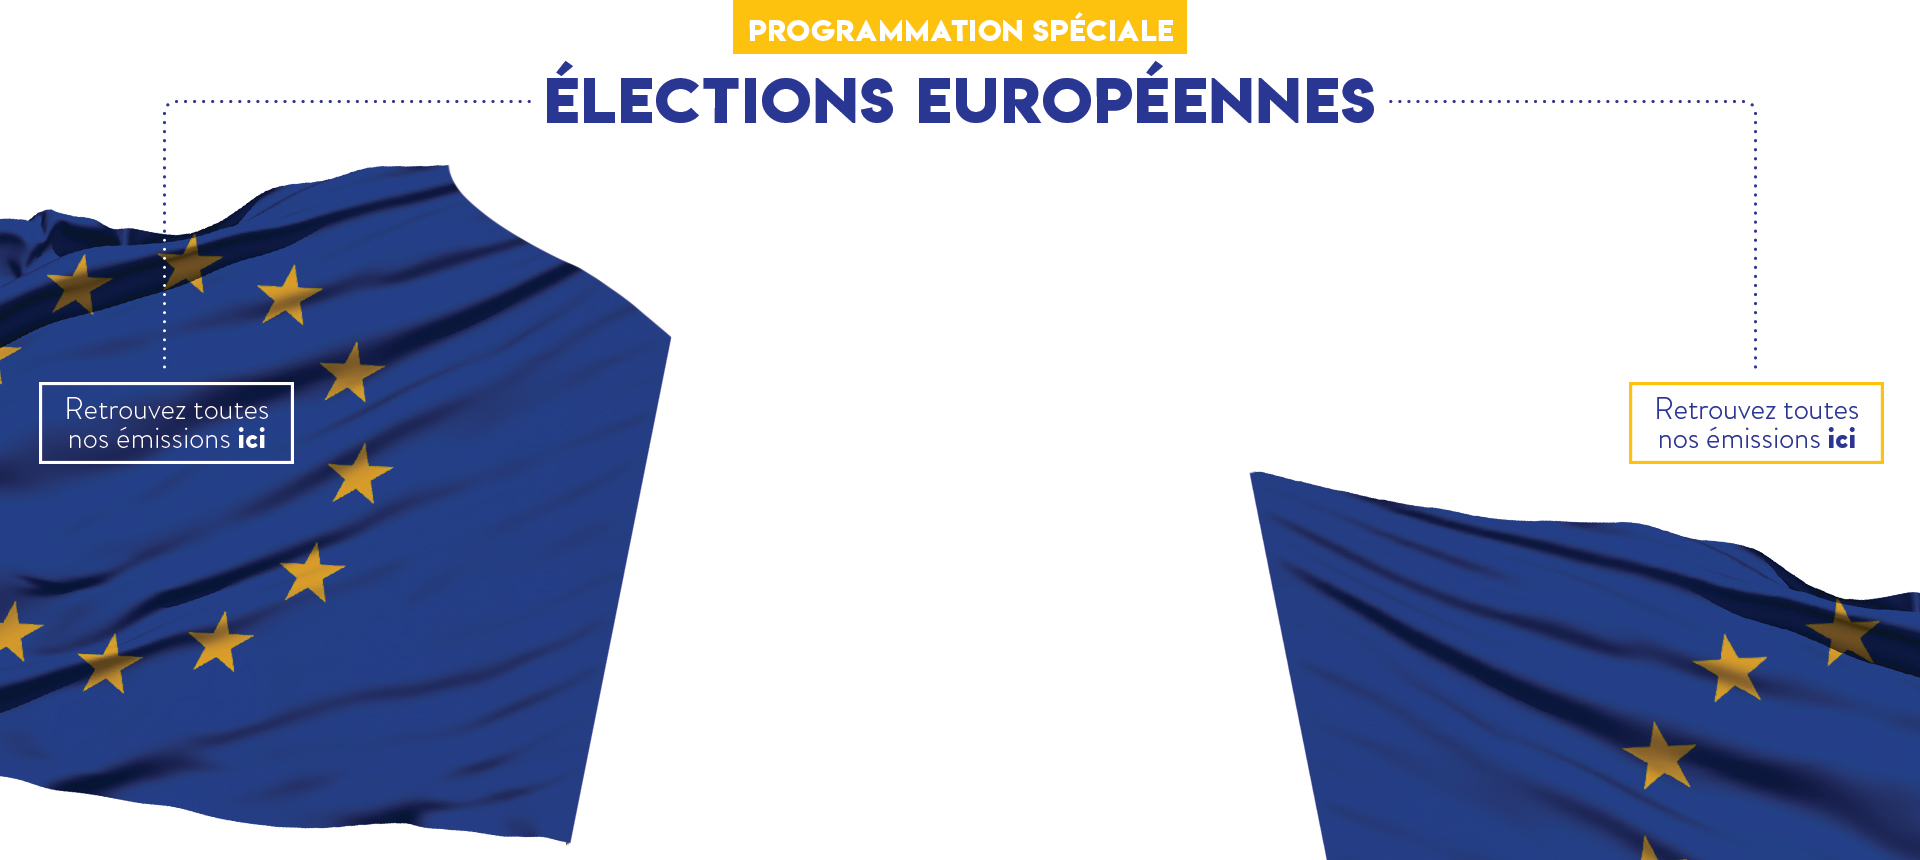 élections europeennes